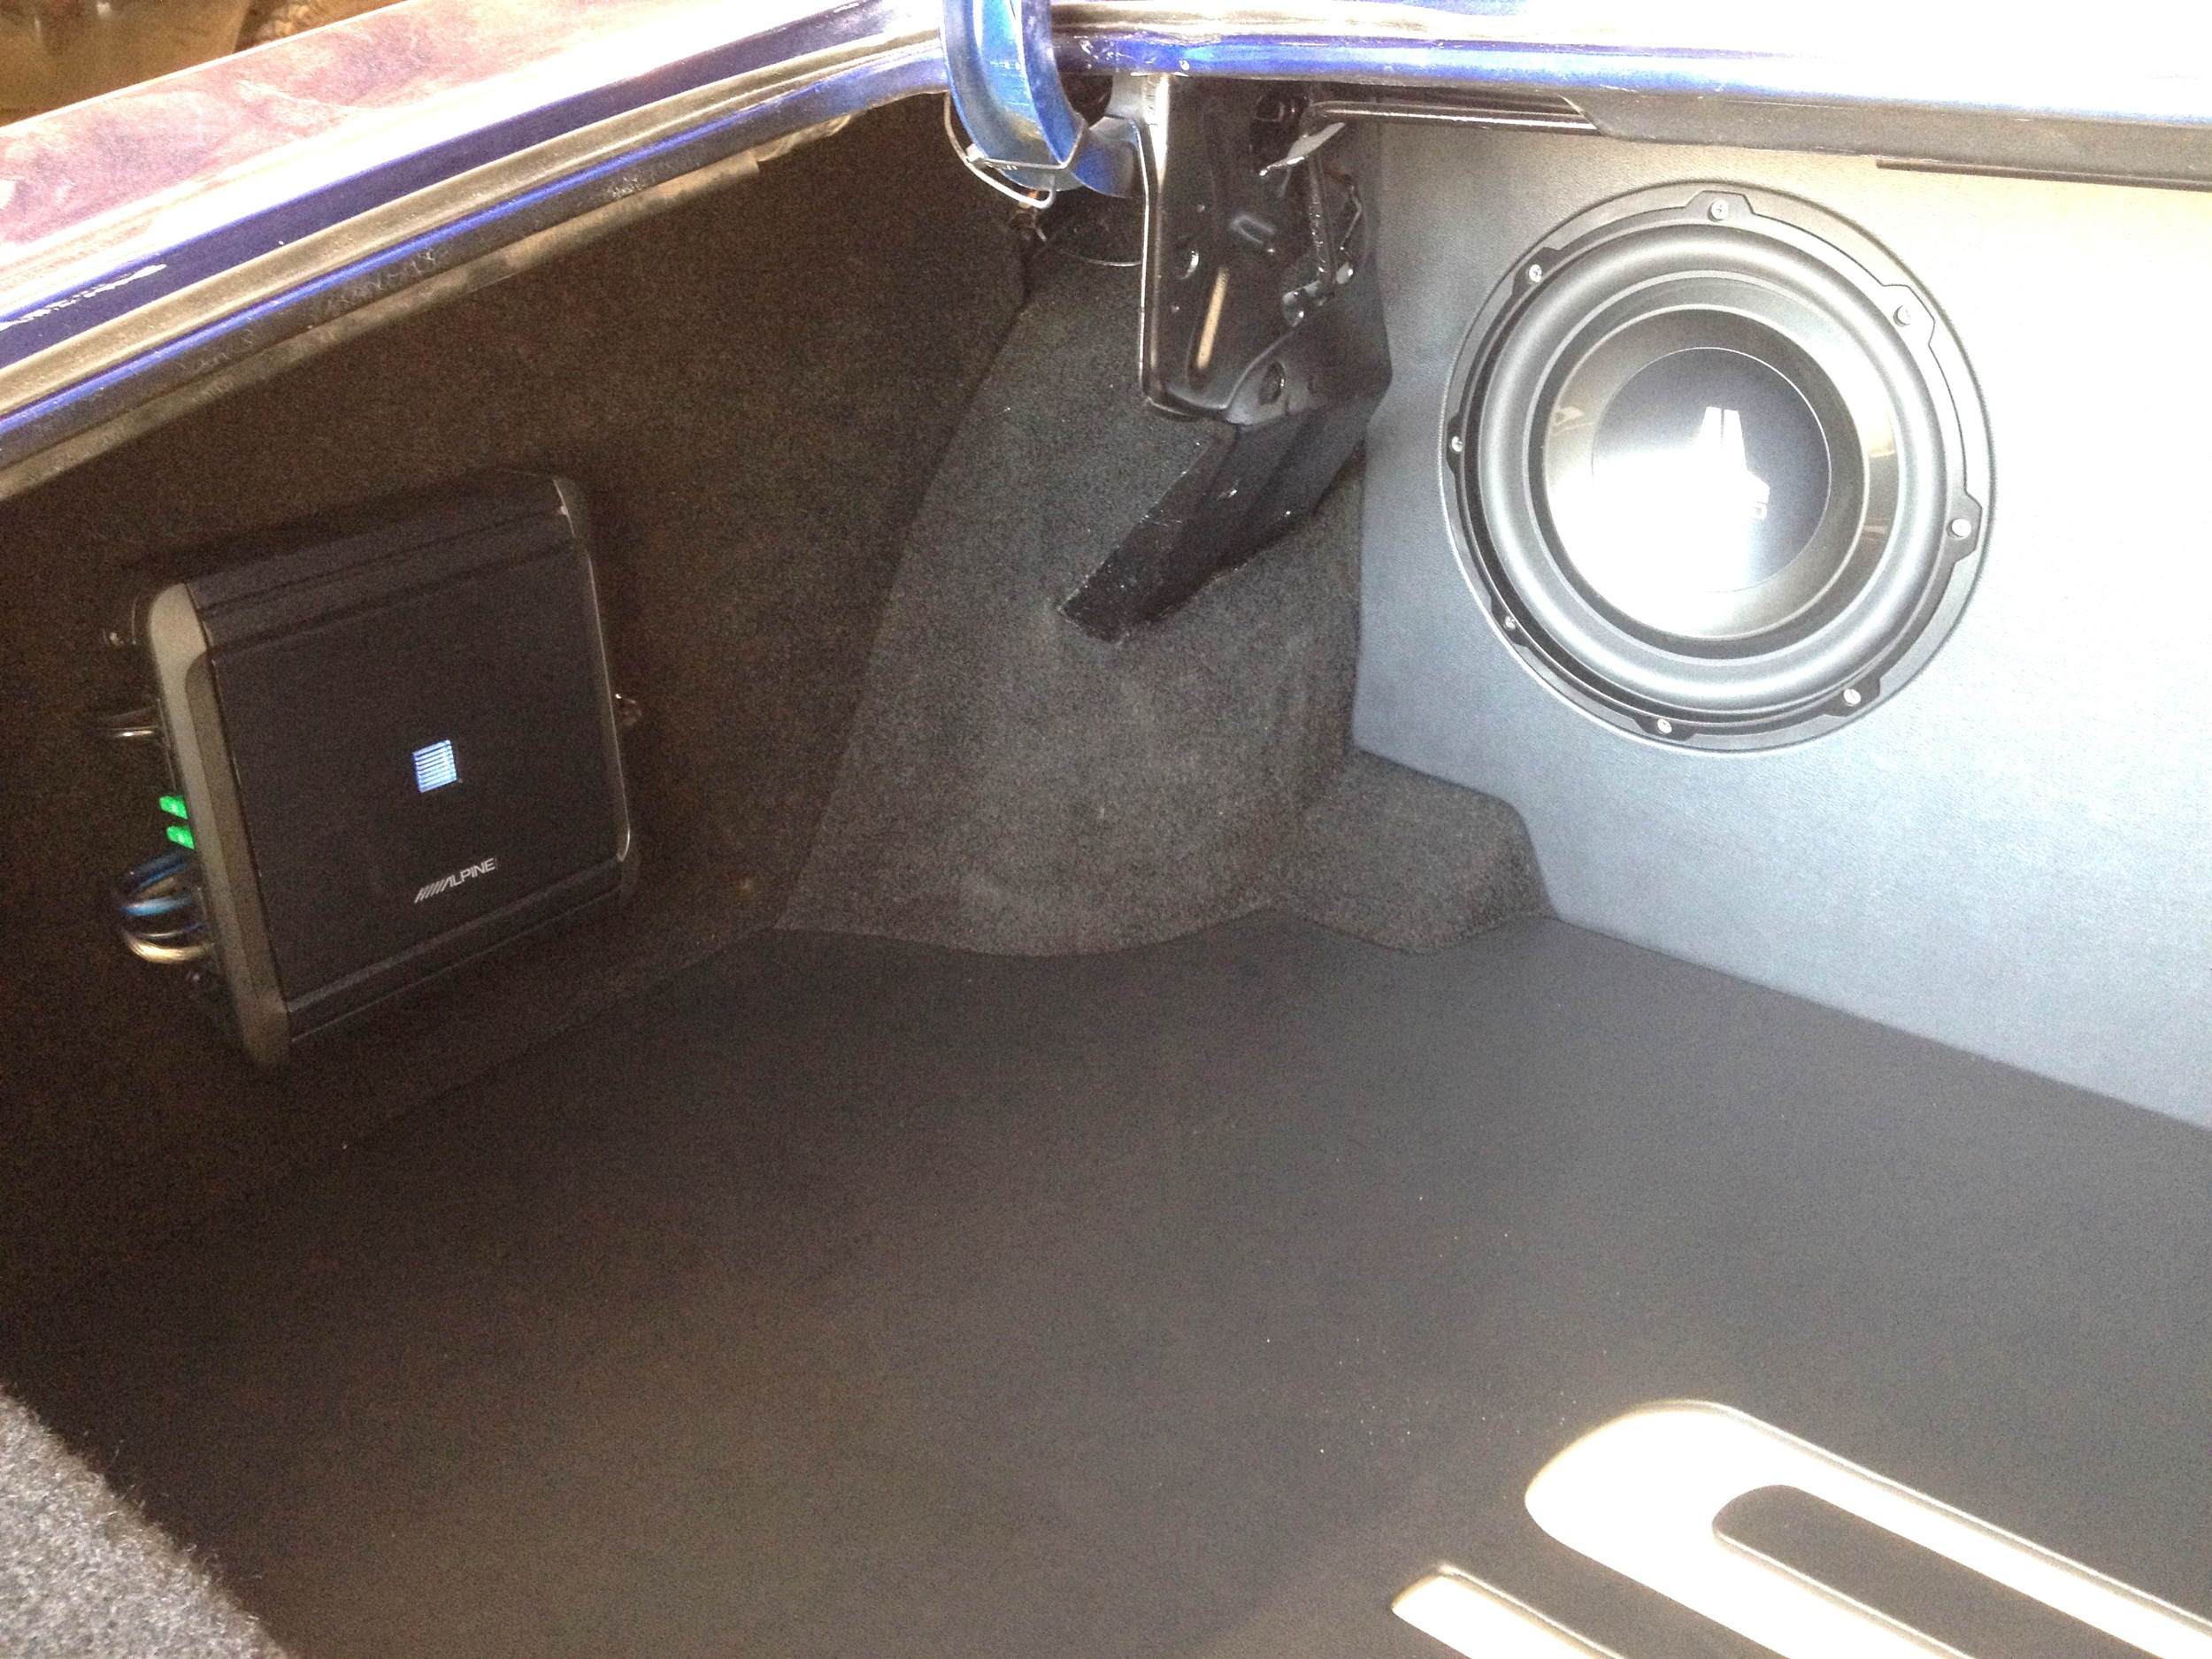 1972 Chevelle - Custom Trunk Finish with Subwoofer Enclosure